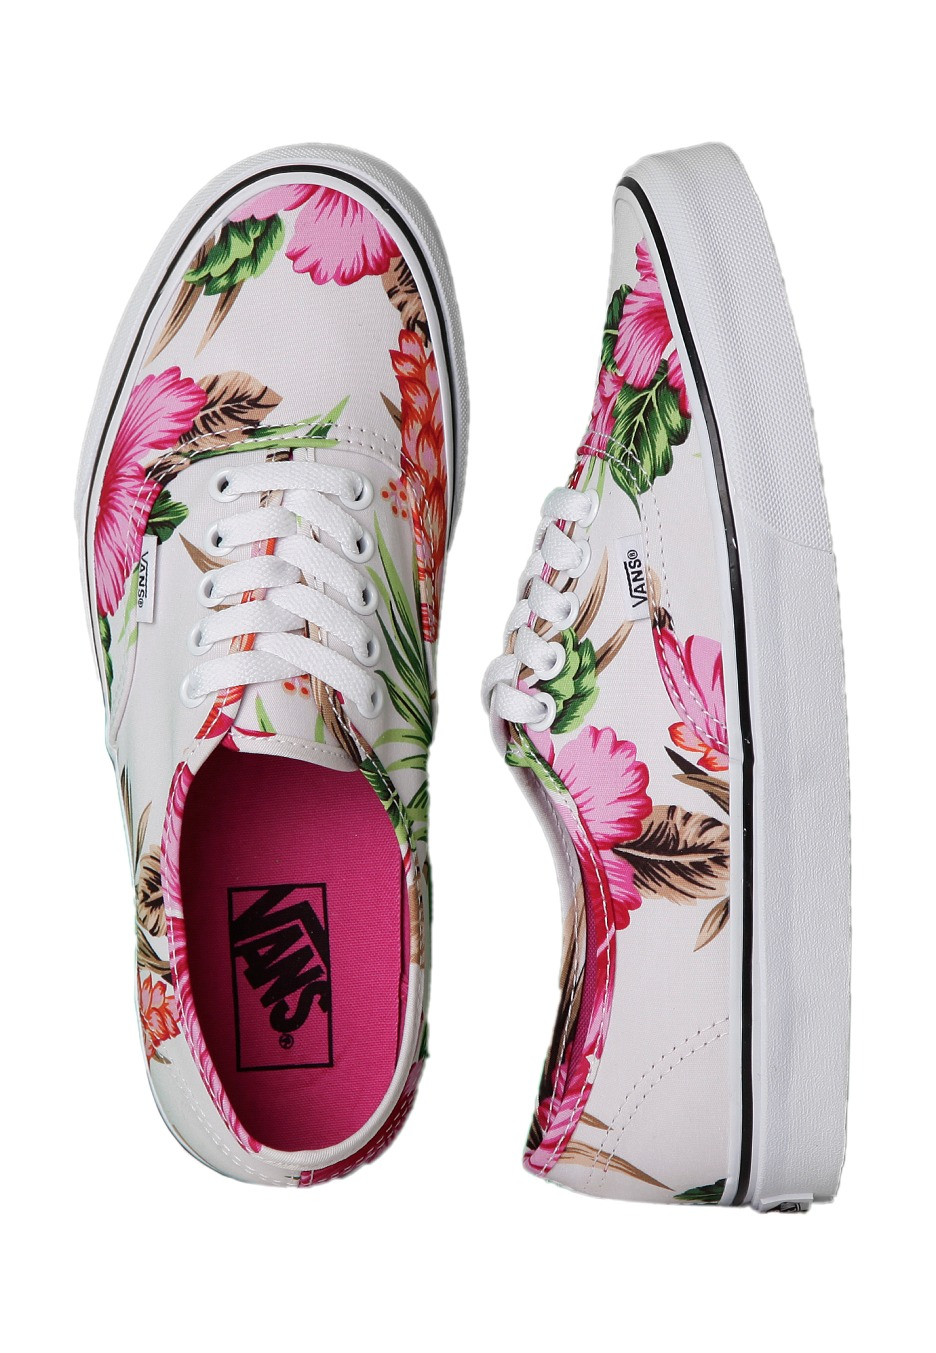 a94440b54010 Pictures of Vans Shoes For Girls Floral - kidskunst.info